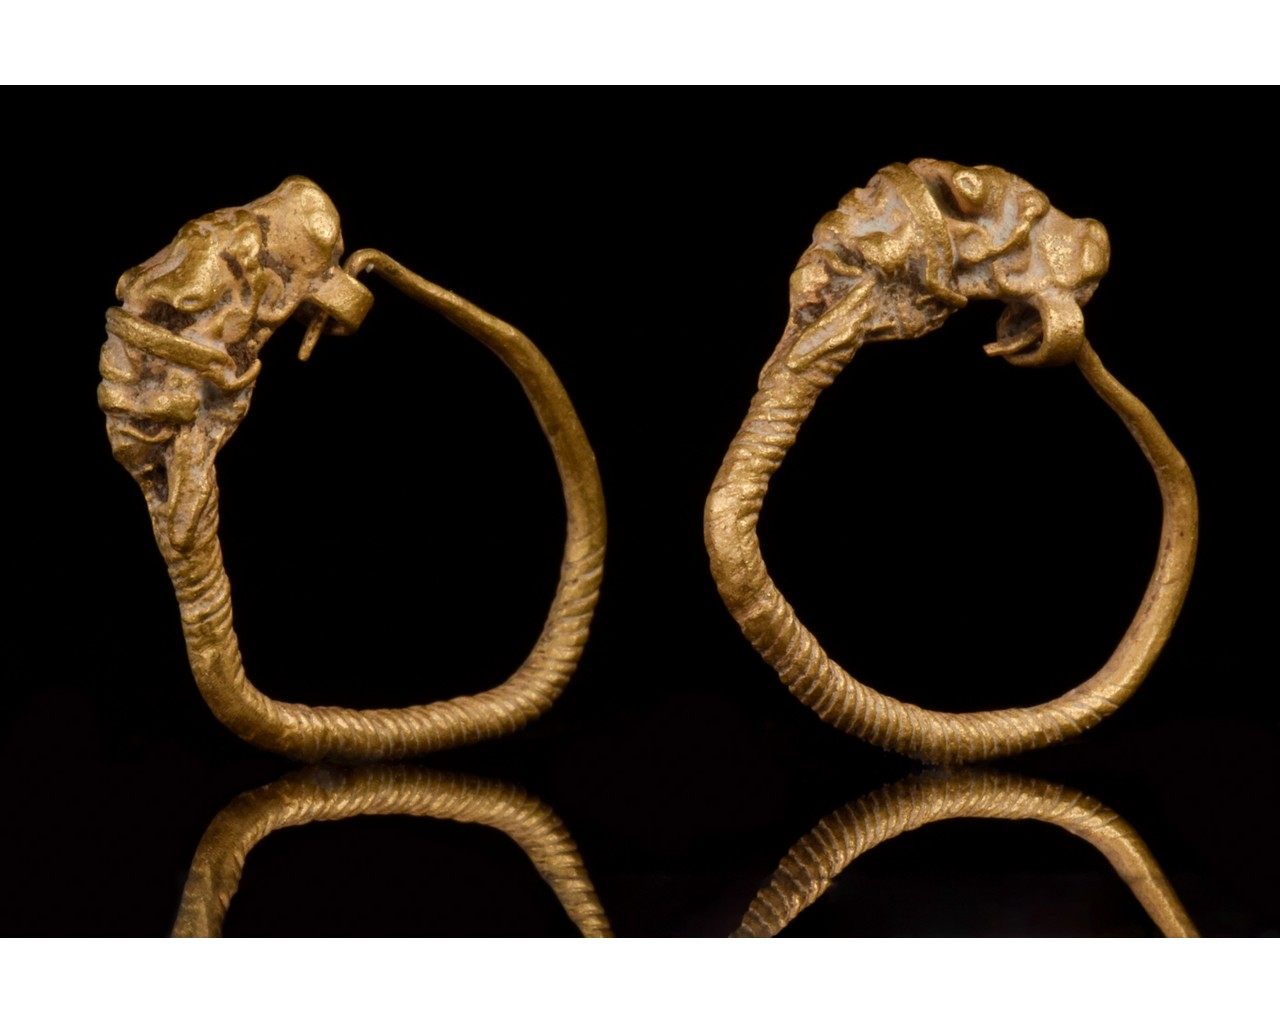 HELLENISTIC GOLD EARRINGS WITH LIONS - XRF TESTED - Image 3 of 8